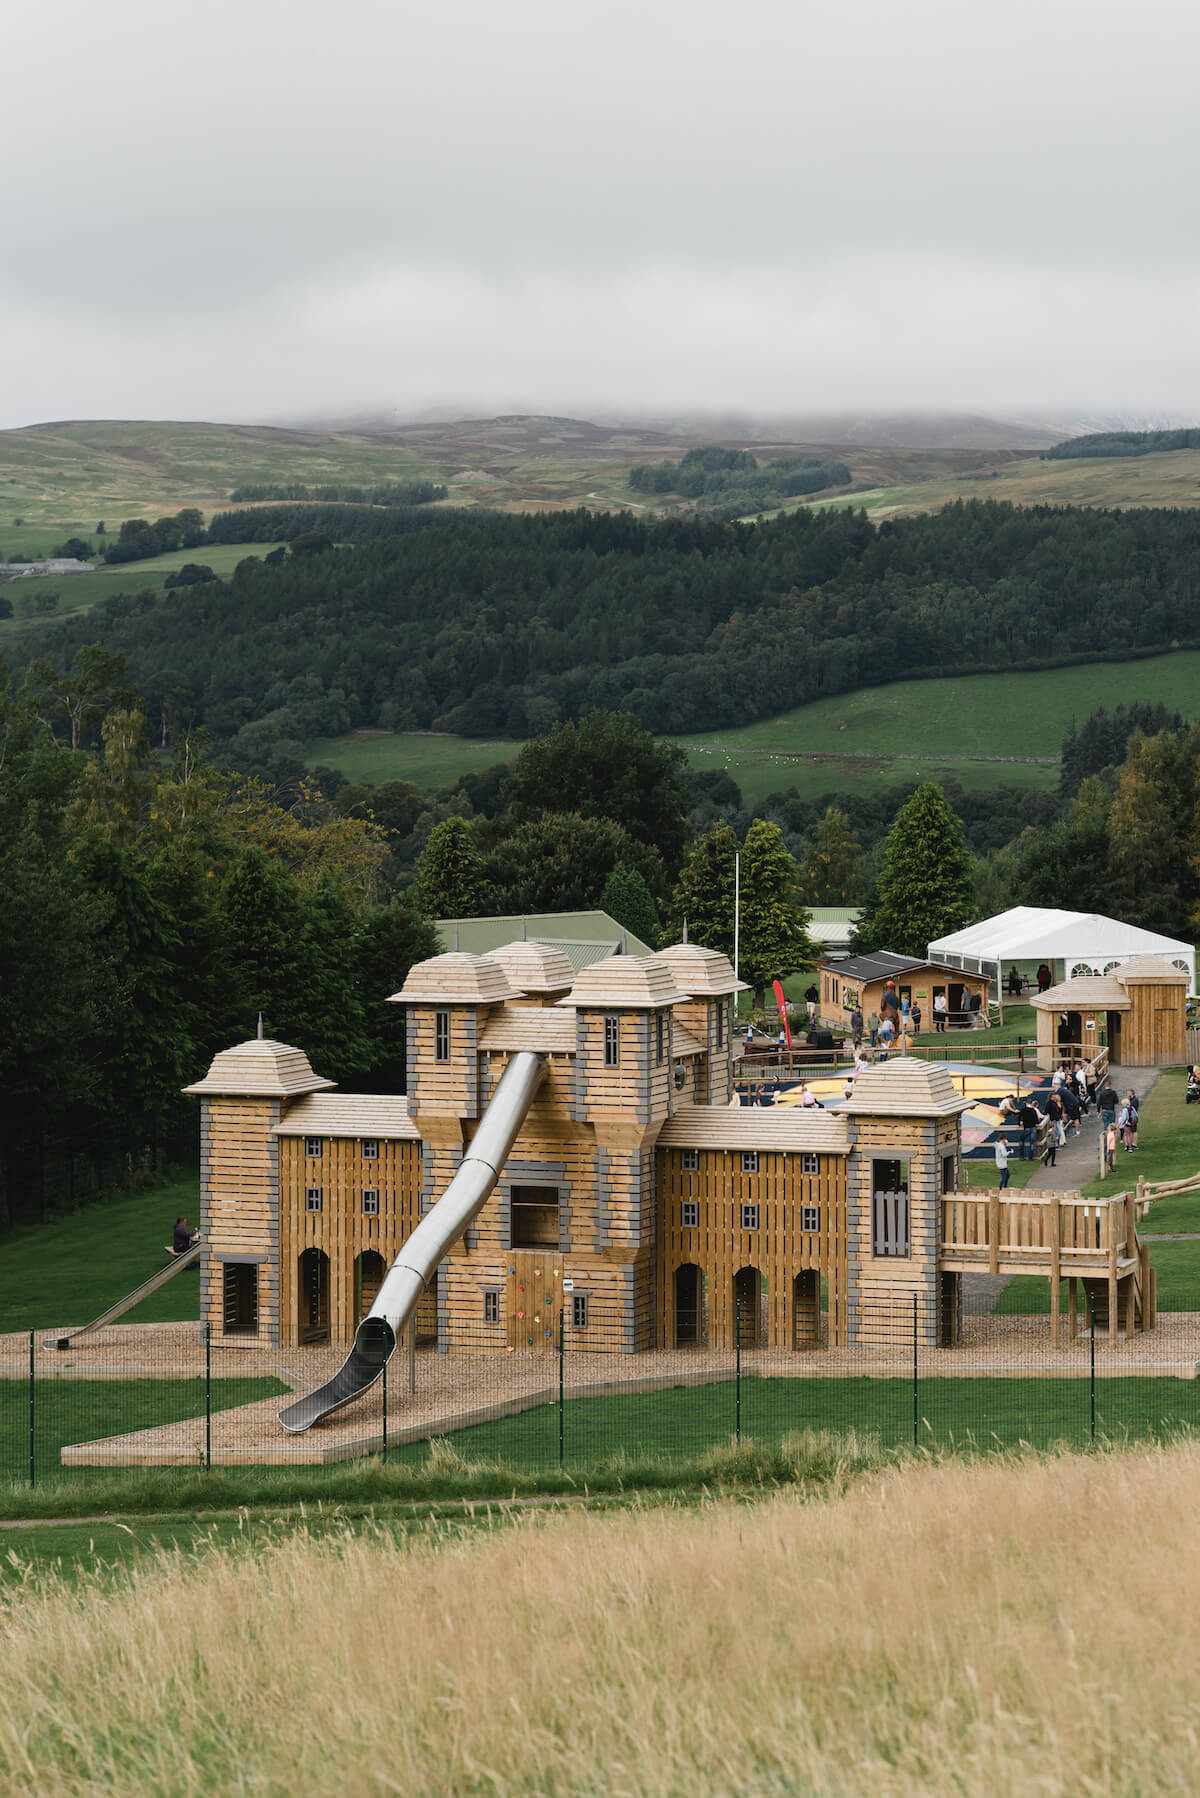 25 Looking down the hill towards the huge adventure play area at Crieff Hydro designed and built by CAP.Co